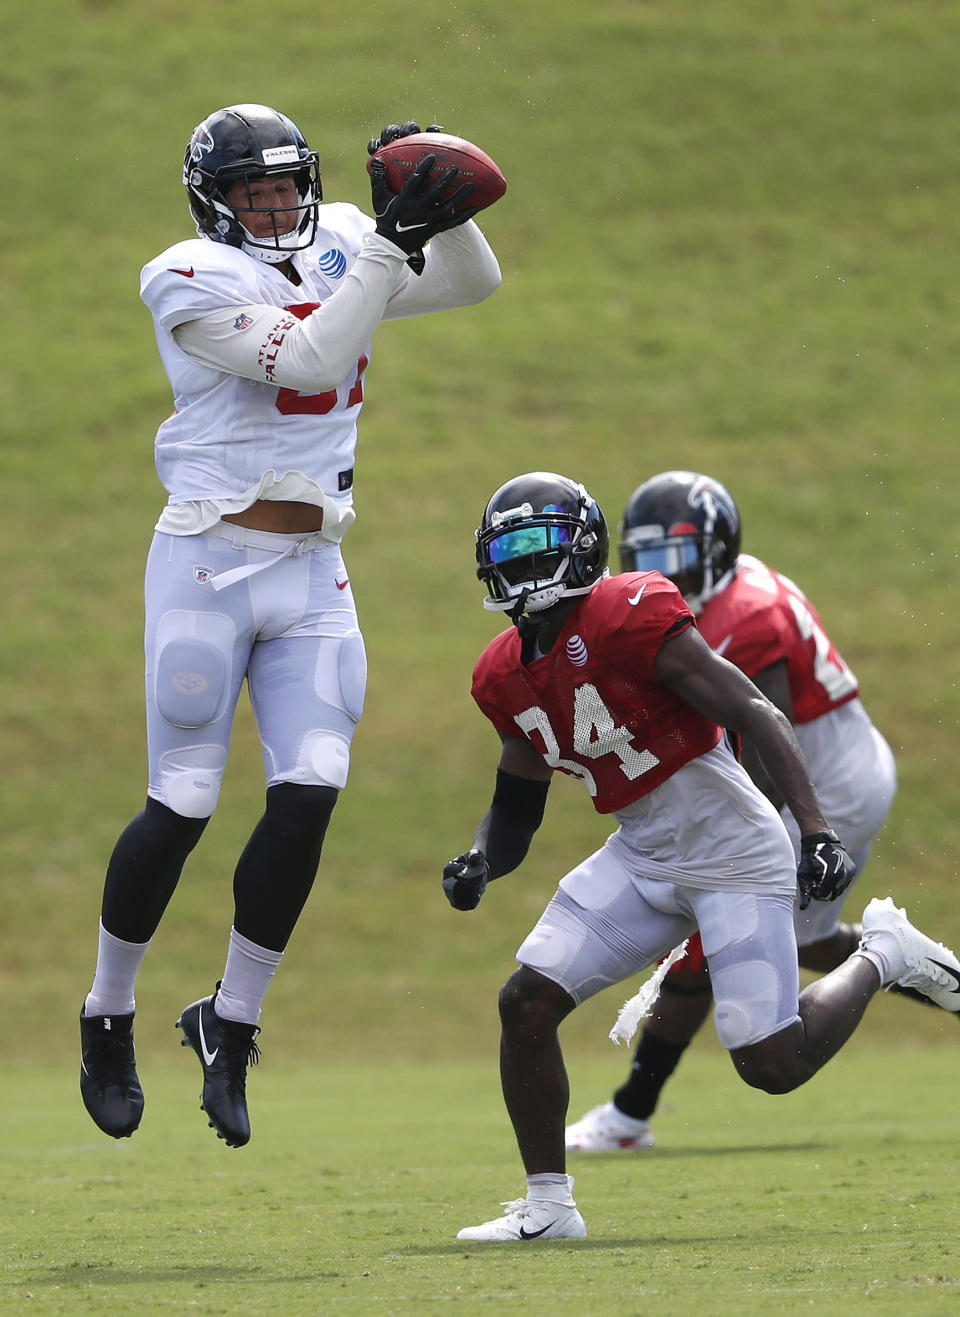 Atlanta Falcons tight end Austin Hooper (81) makes a catch as cornerback Brian Poole (34) defends during NFL football training camp, Tuesday, Aug. 7, 2018, in Flowery Branch, Ga. (AP Photo/John Bazemore)